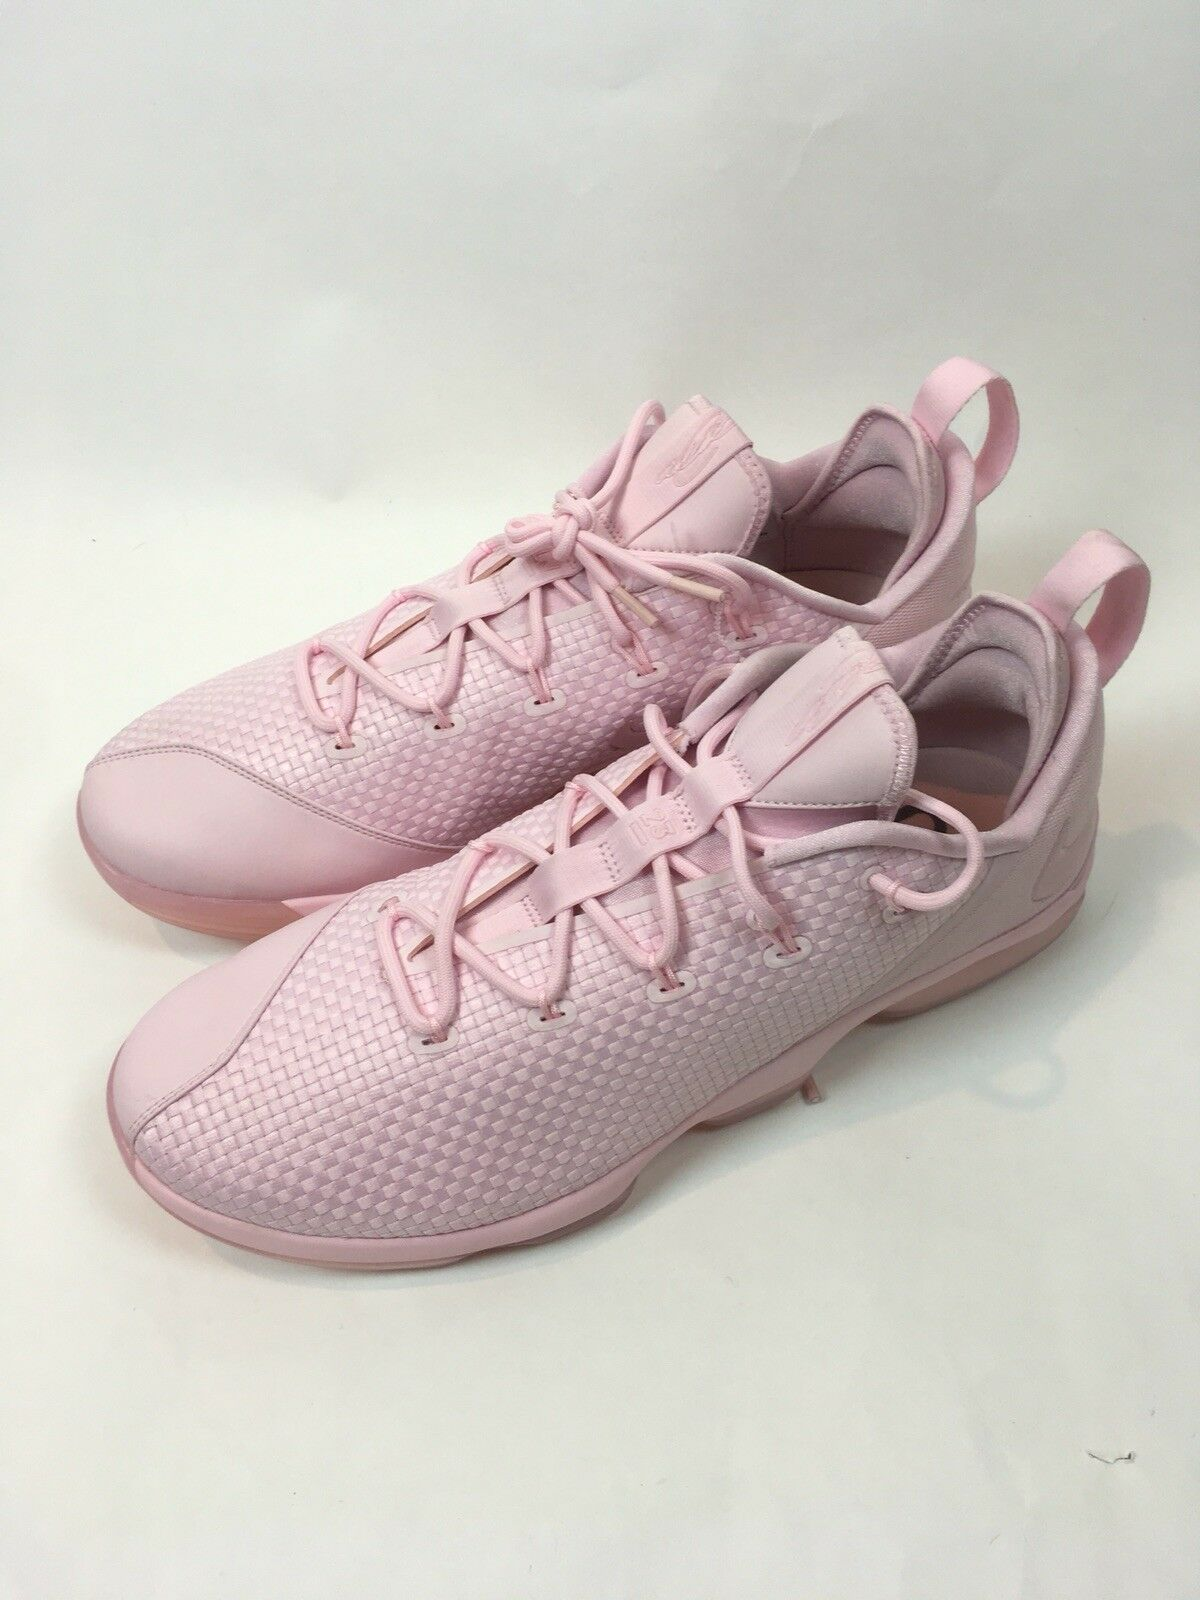 Nike Lebron James 14 Low Basketball Shoes - Pink - Brand New - 17 Brand discount